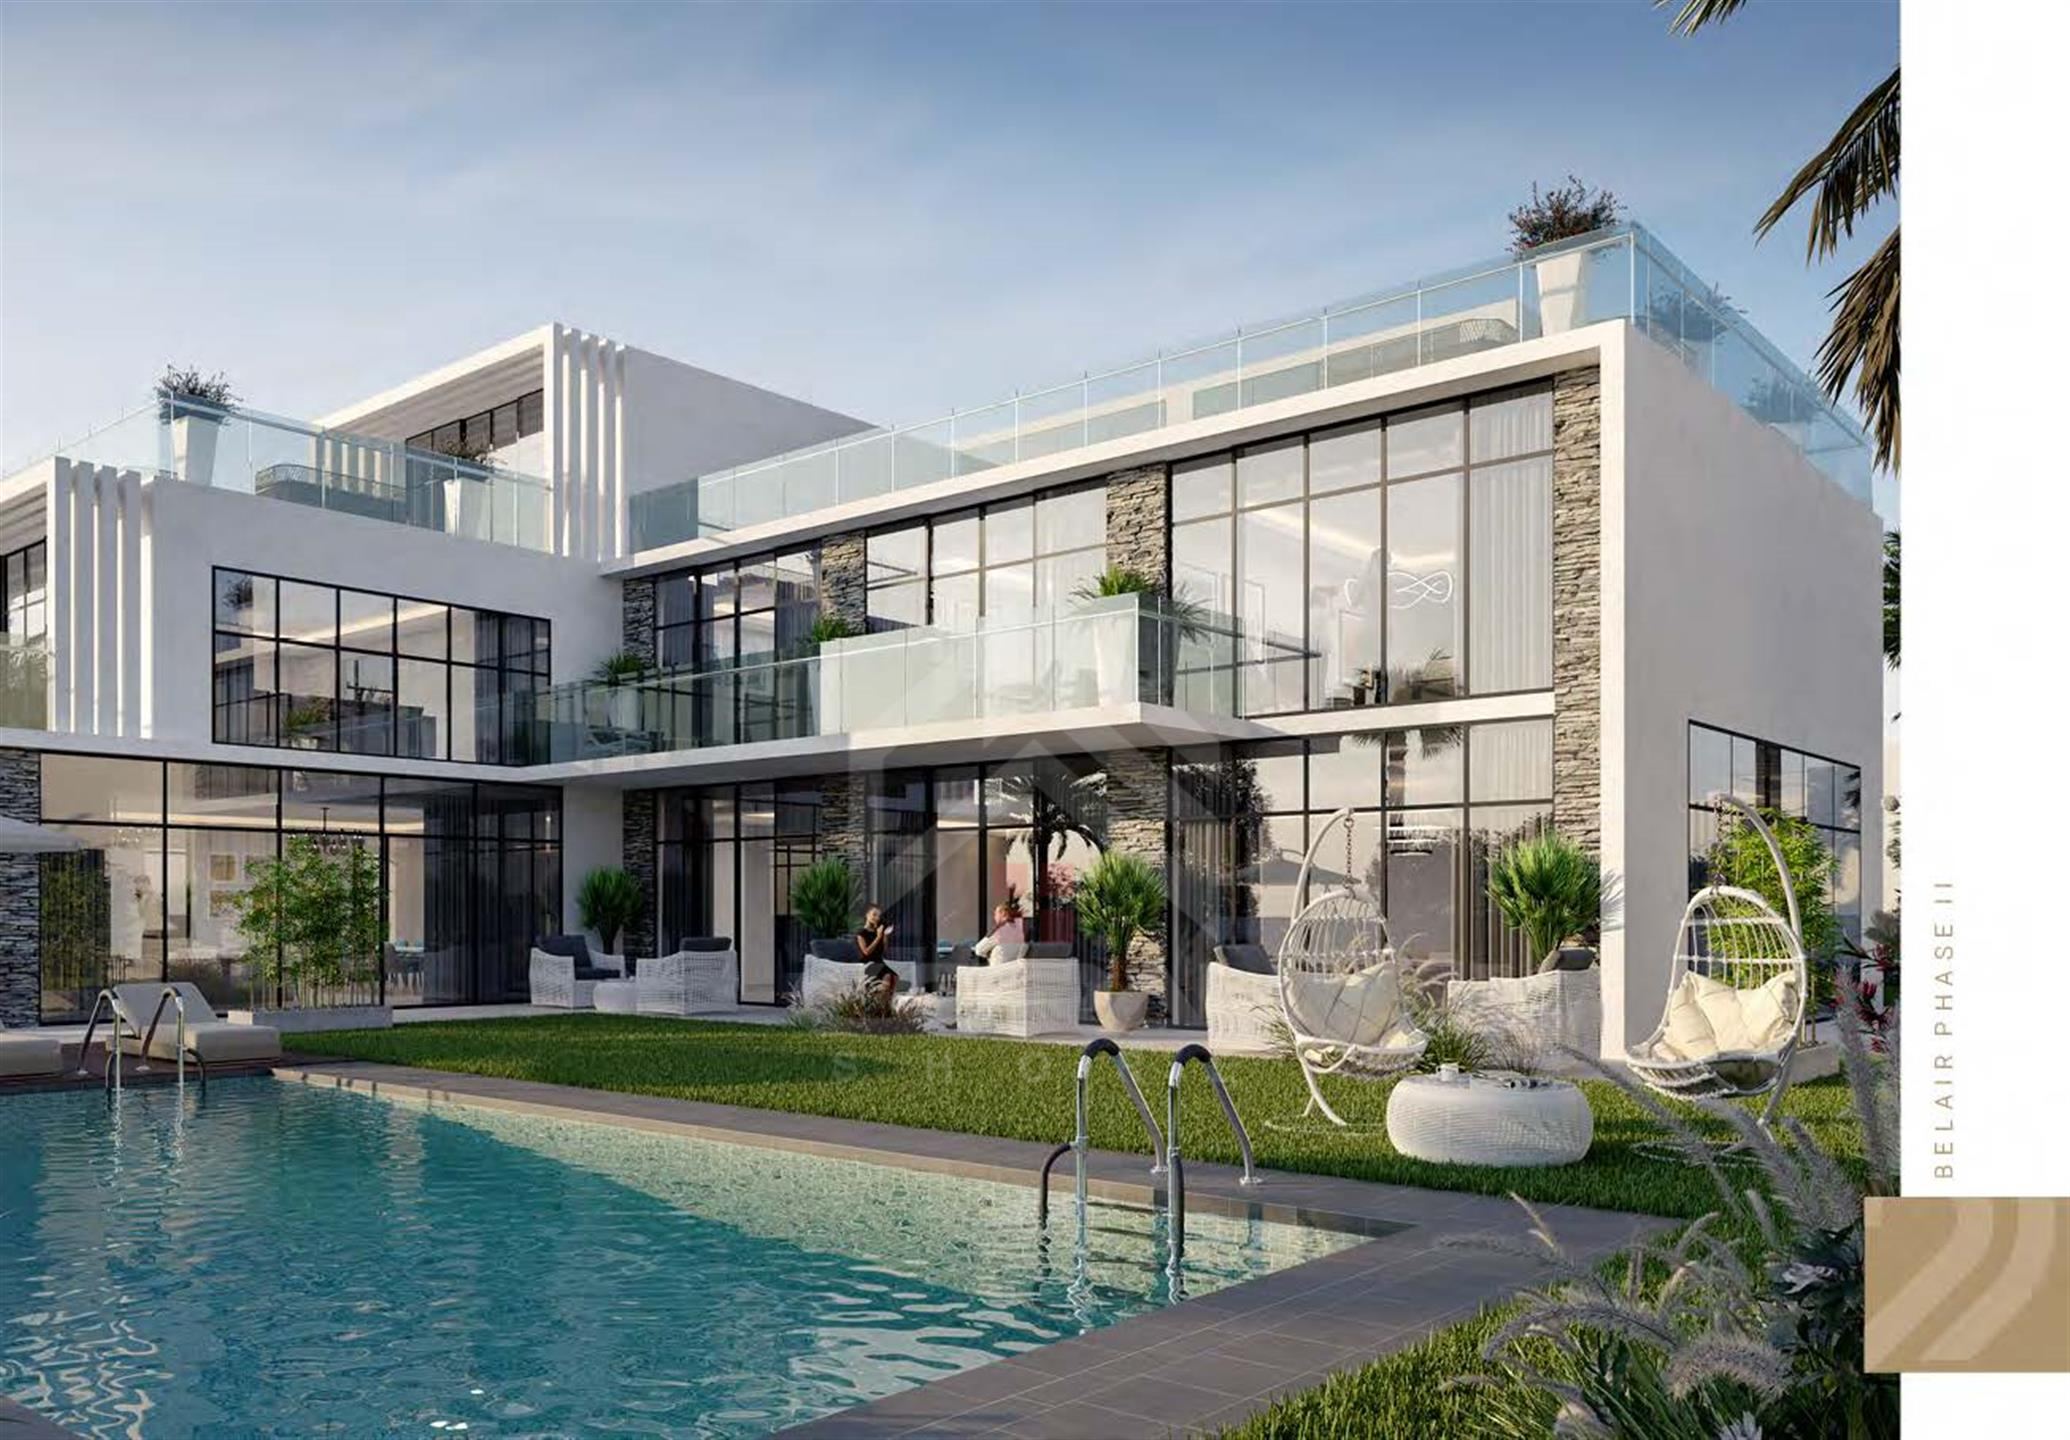 Main Photo of a 9 bedroom  Villa for sale